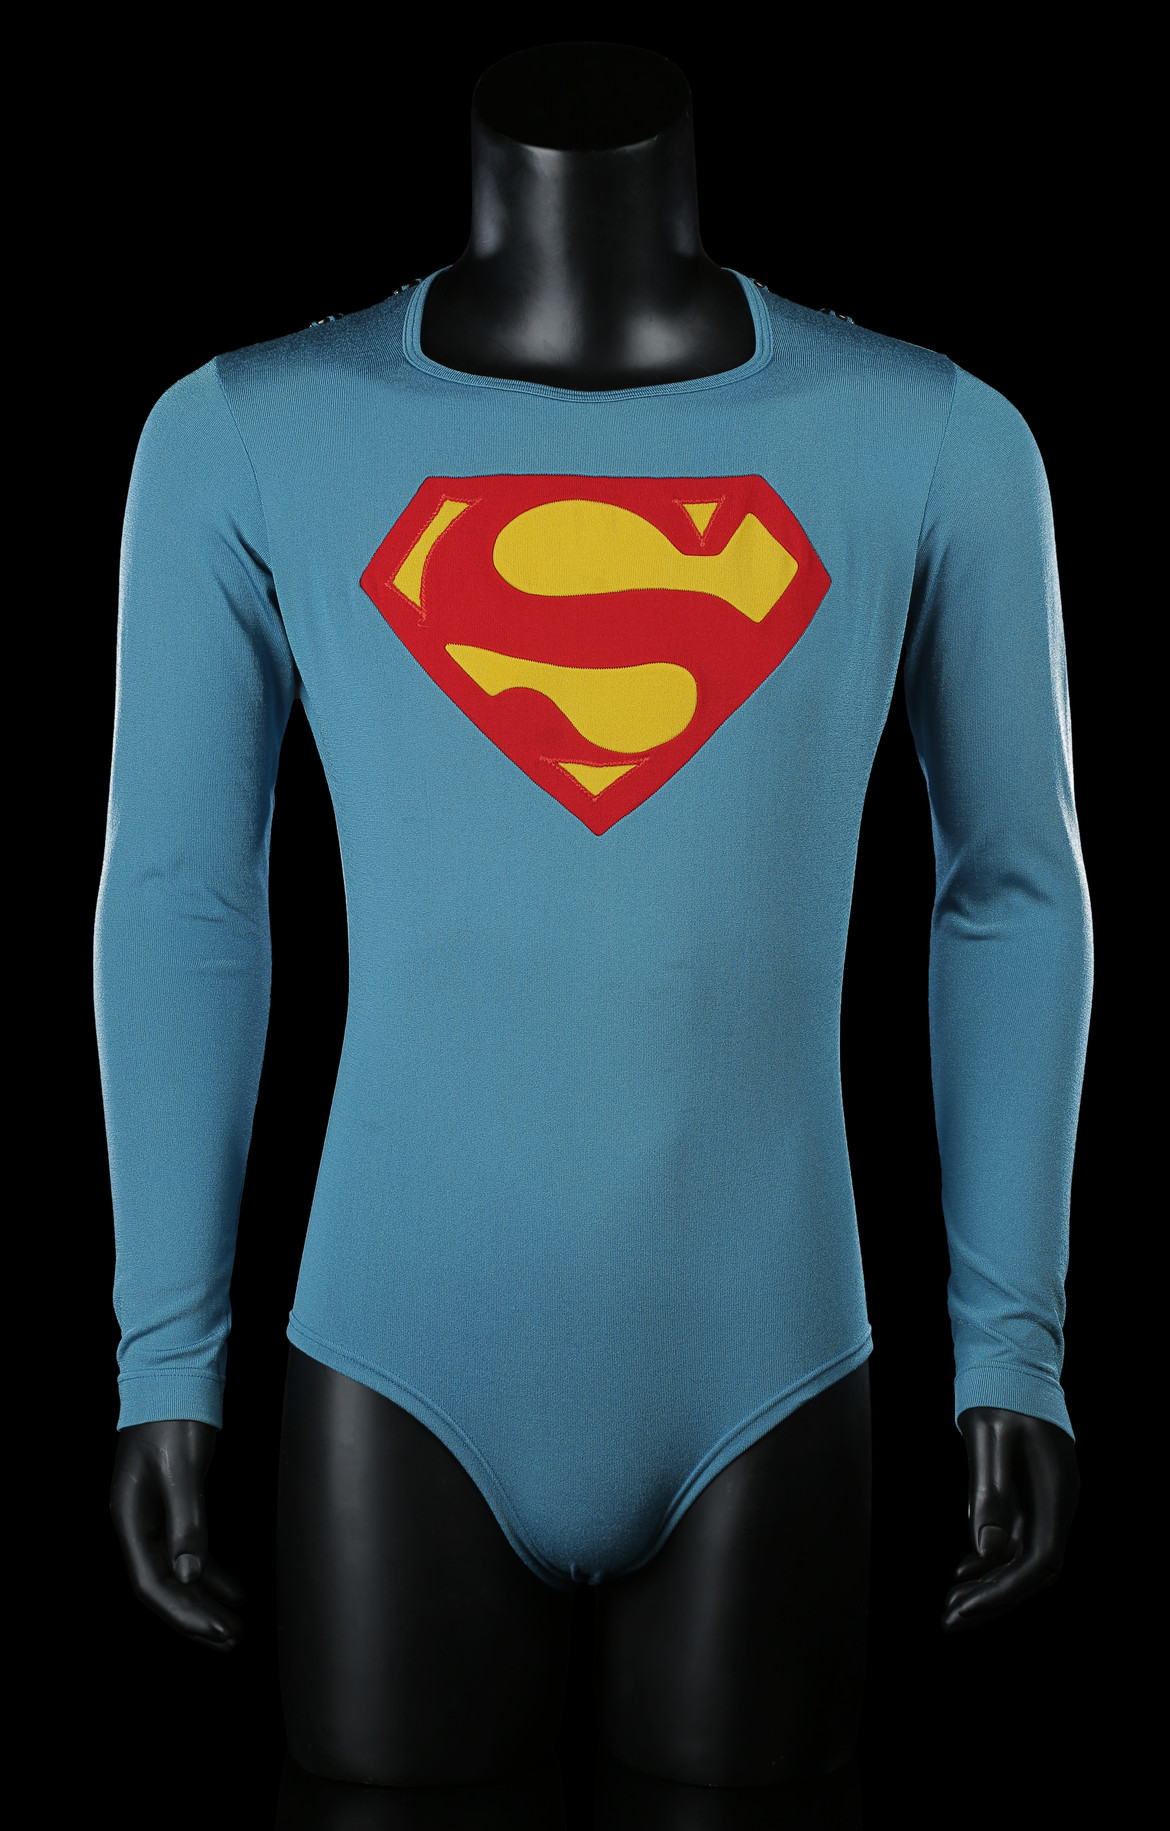 65675_Superman's Christopher Reeve Tunic_1.JPG